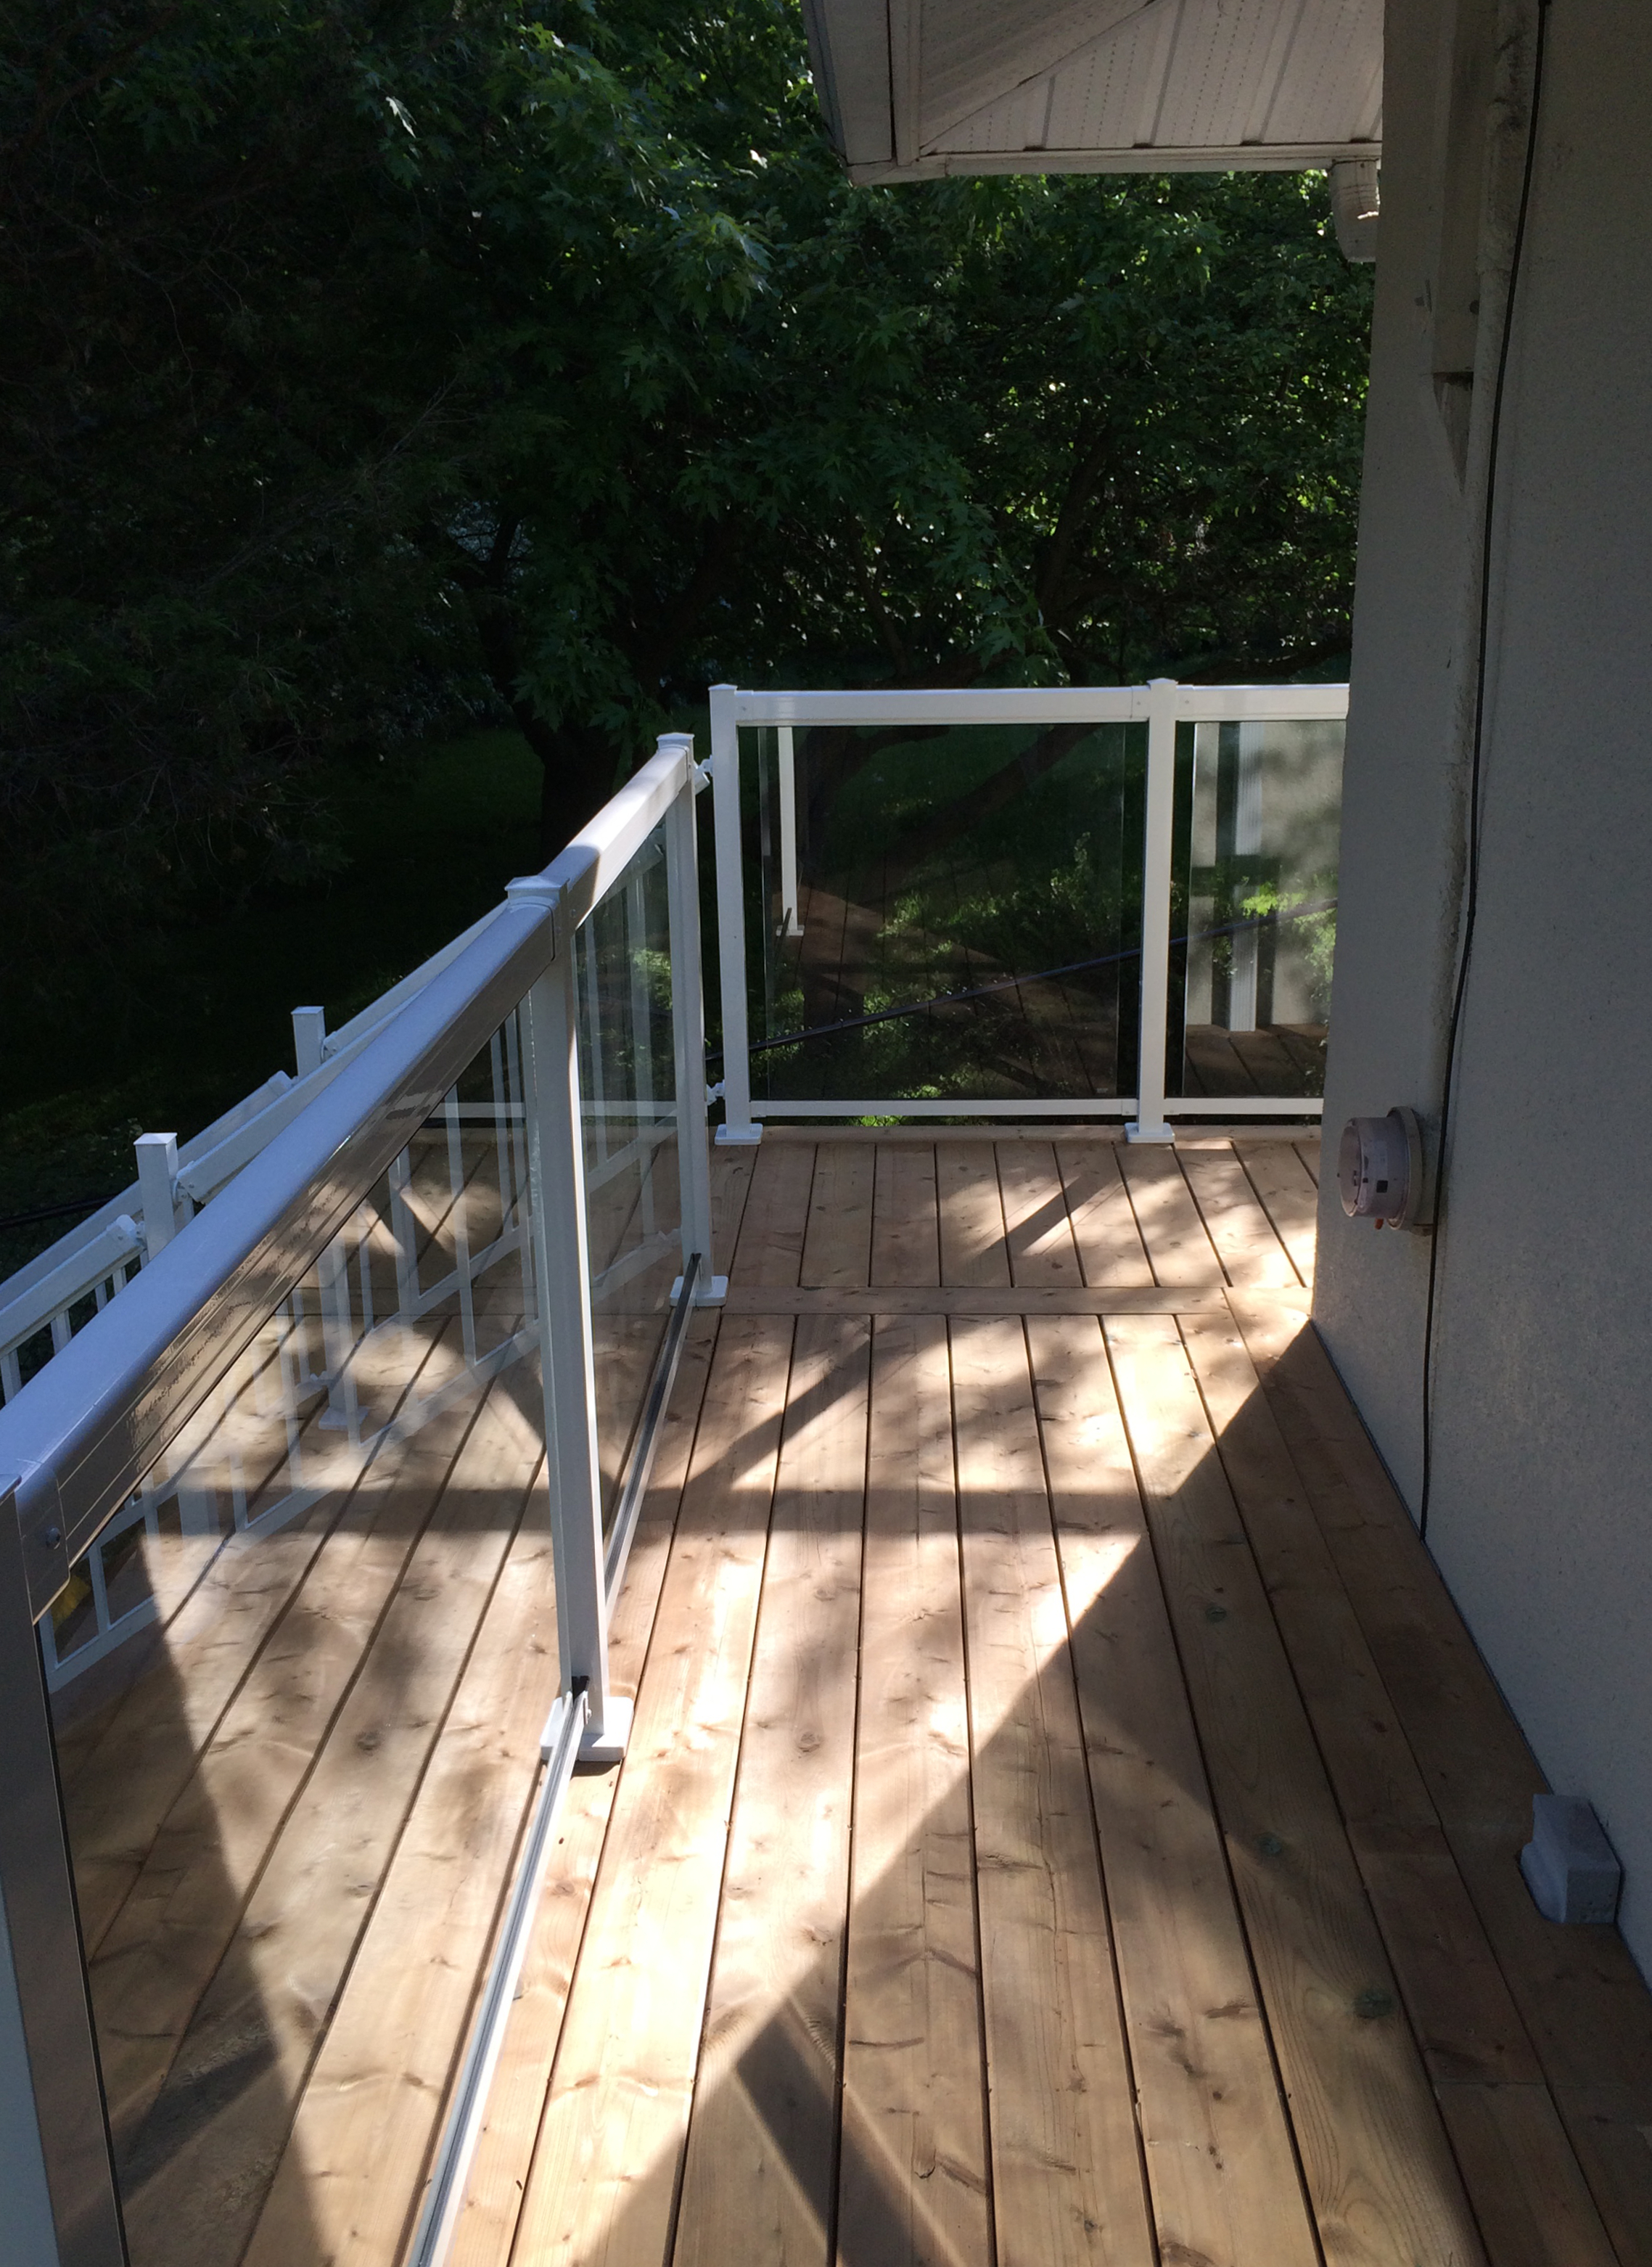 Sutton Deck - After Construction Walkway